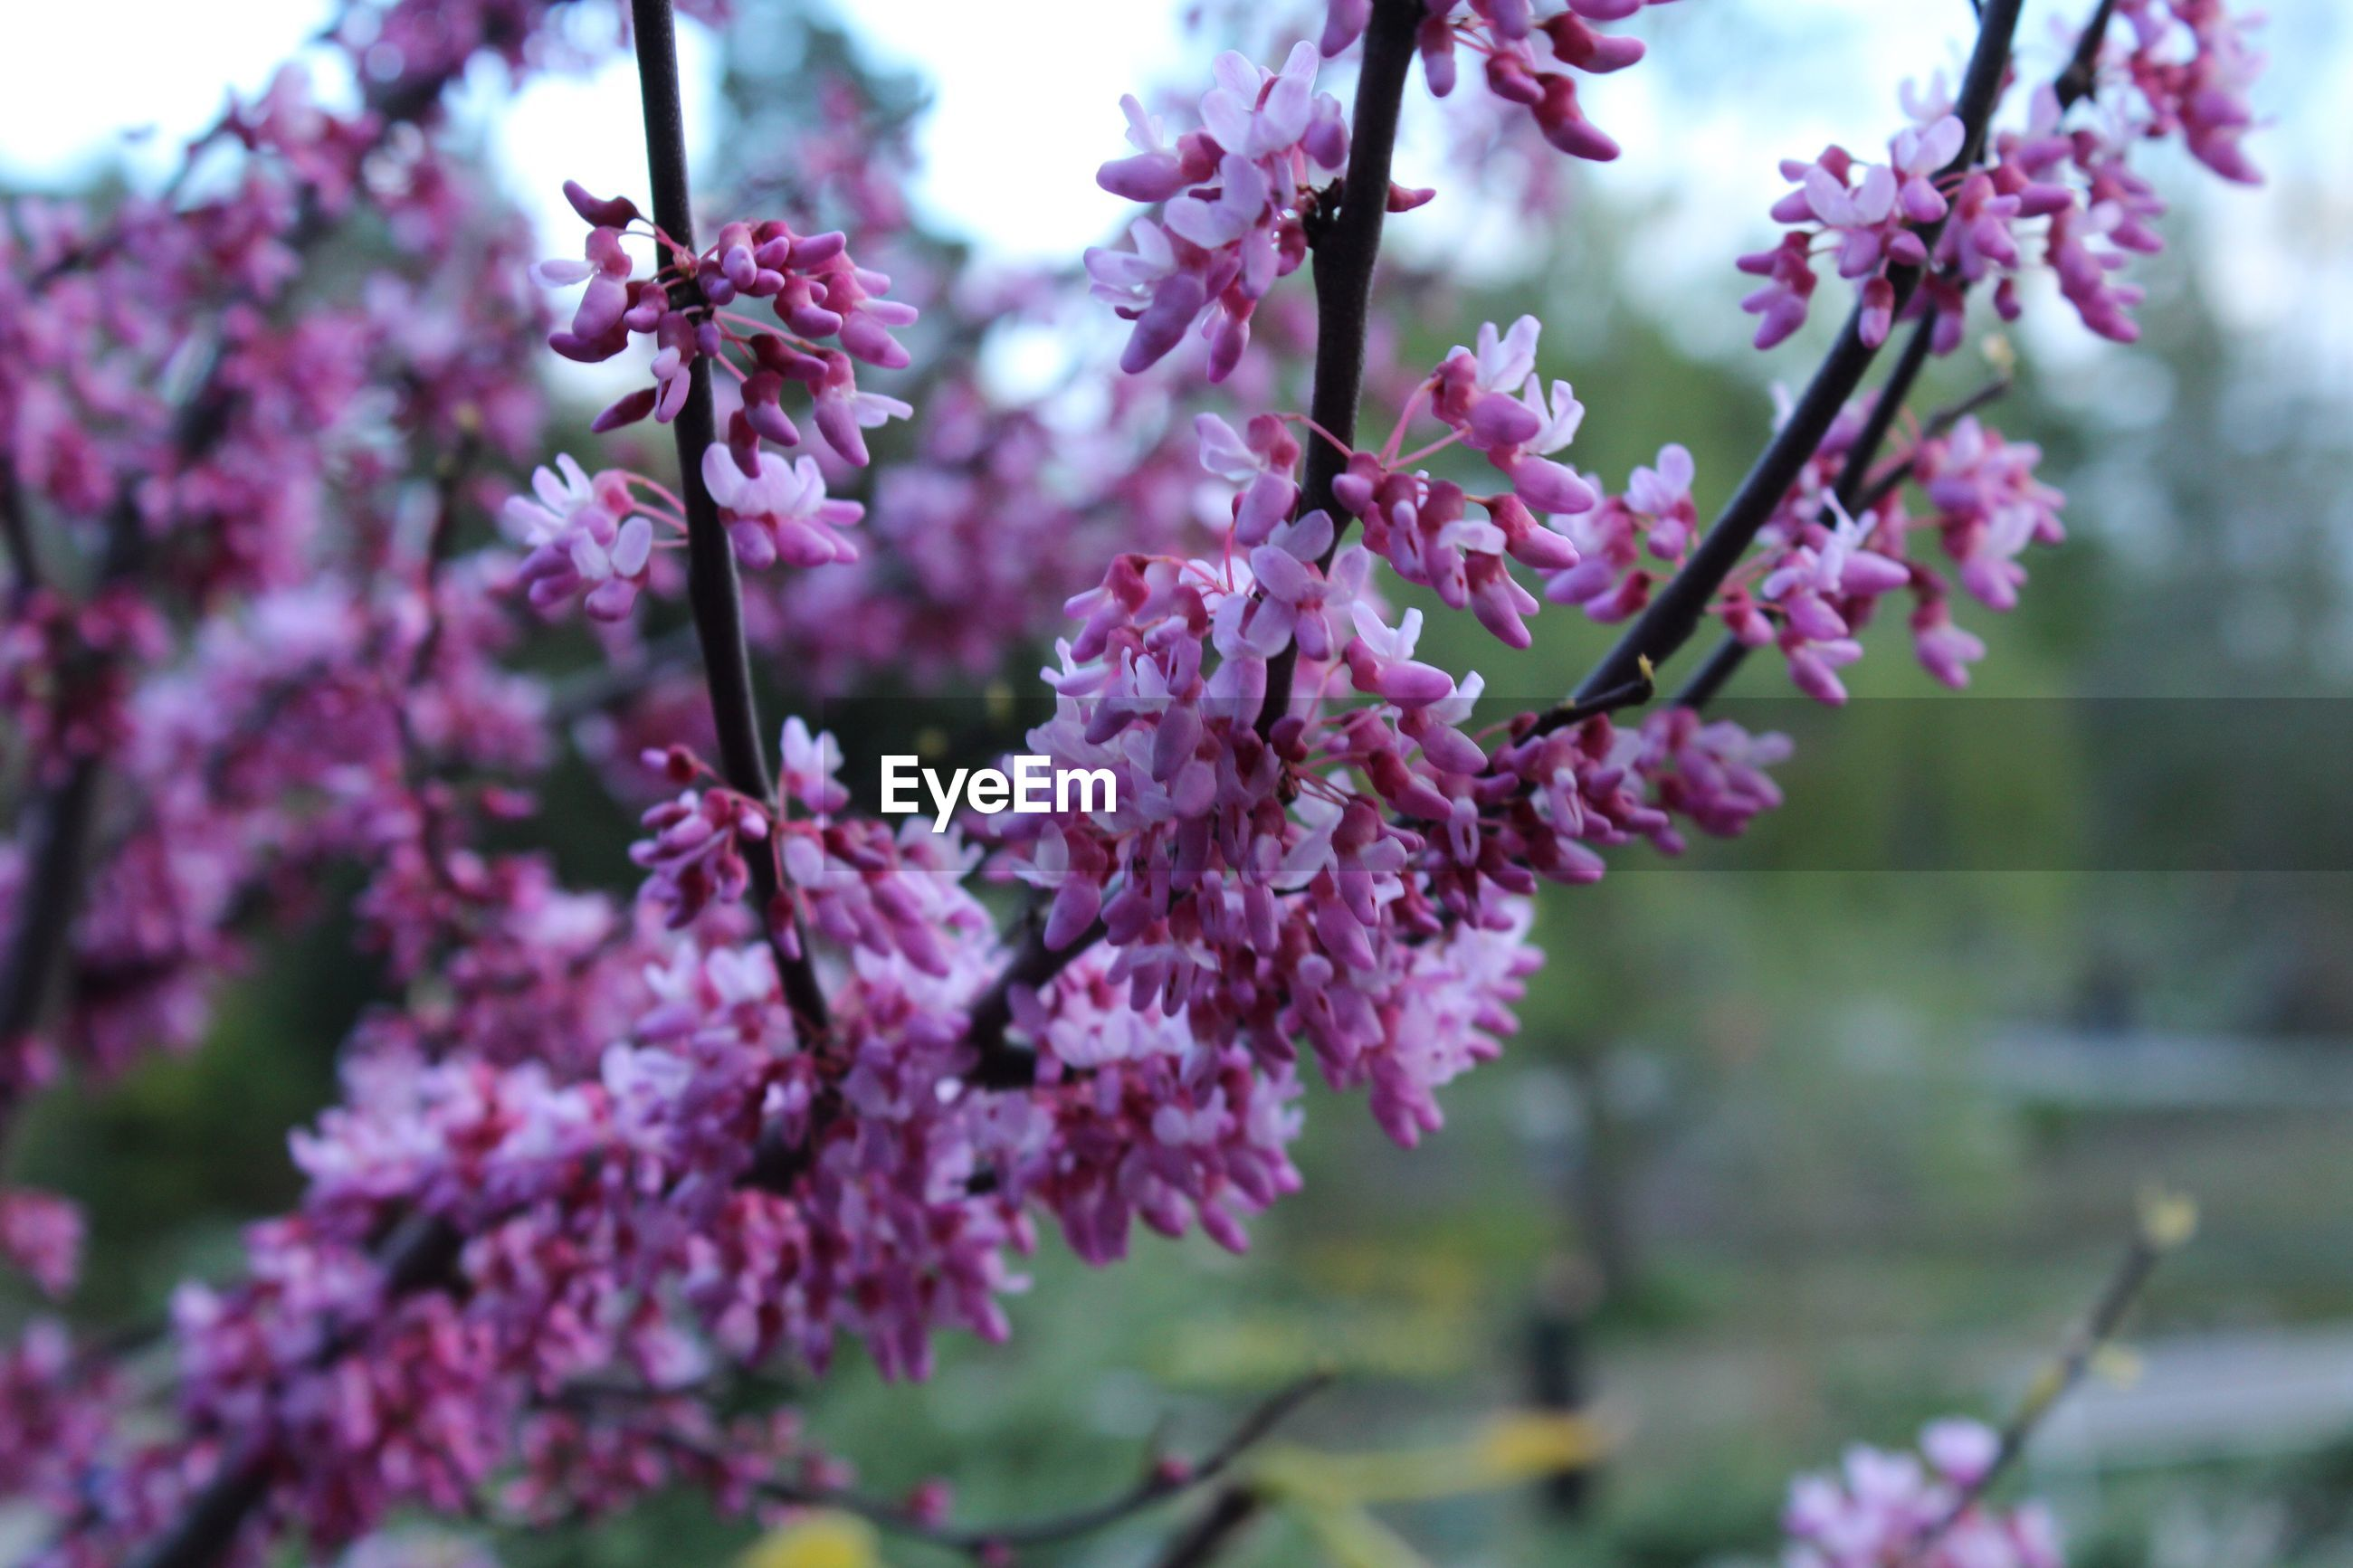 flower, freshness, pink color, growth, fragility, beauty in nature, focus on foreground, branch, tree, nature, cherry blossom, close-up, blossom, petal, cherry tree, blooming, in bloom, pink, springtime, twig